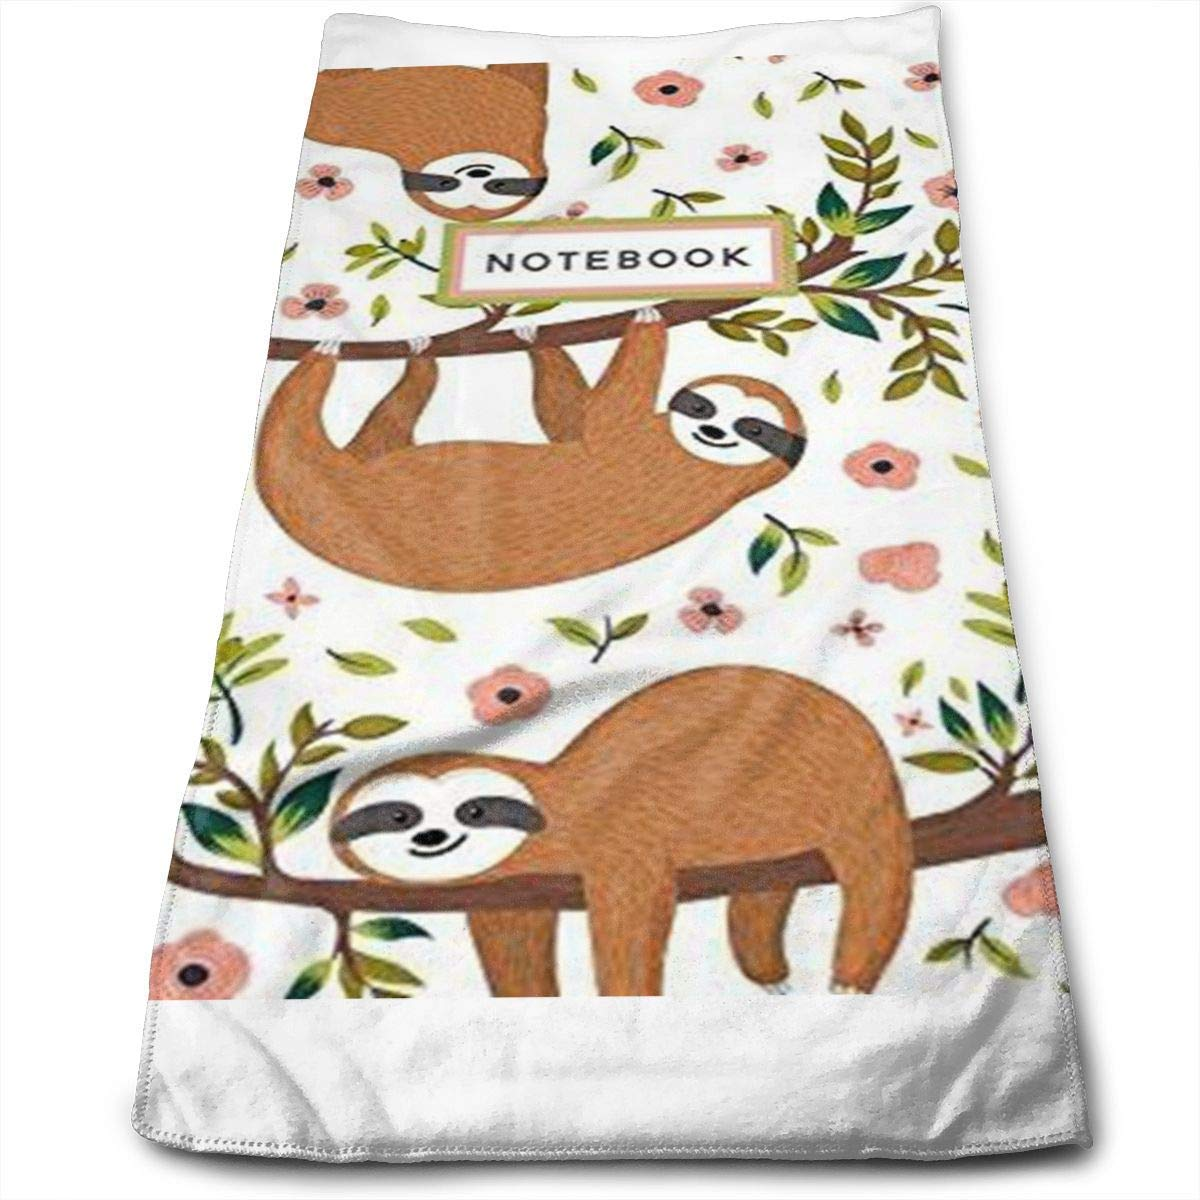 OQUYCZ Pet Animal Sloth Multi-Purpose Microfiber Towel Ultra Compact Super Absorbent and Fast Drying Sports Towel Travel Towel Beach Towel Perfect for Camping, Gym, Swimming.